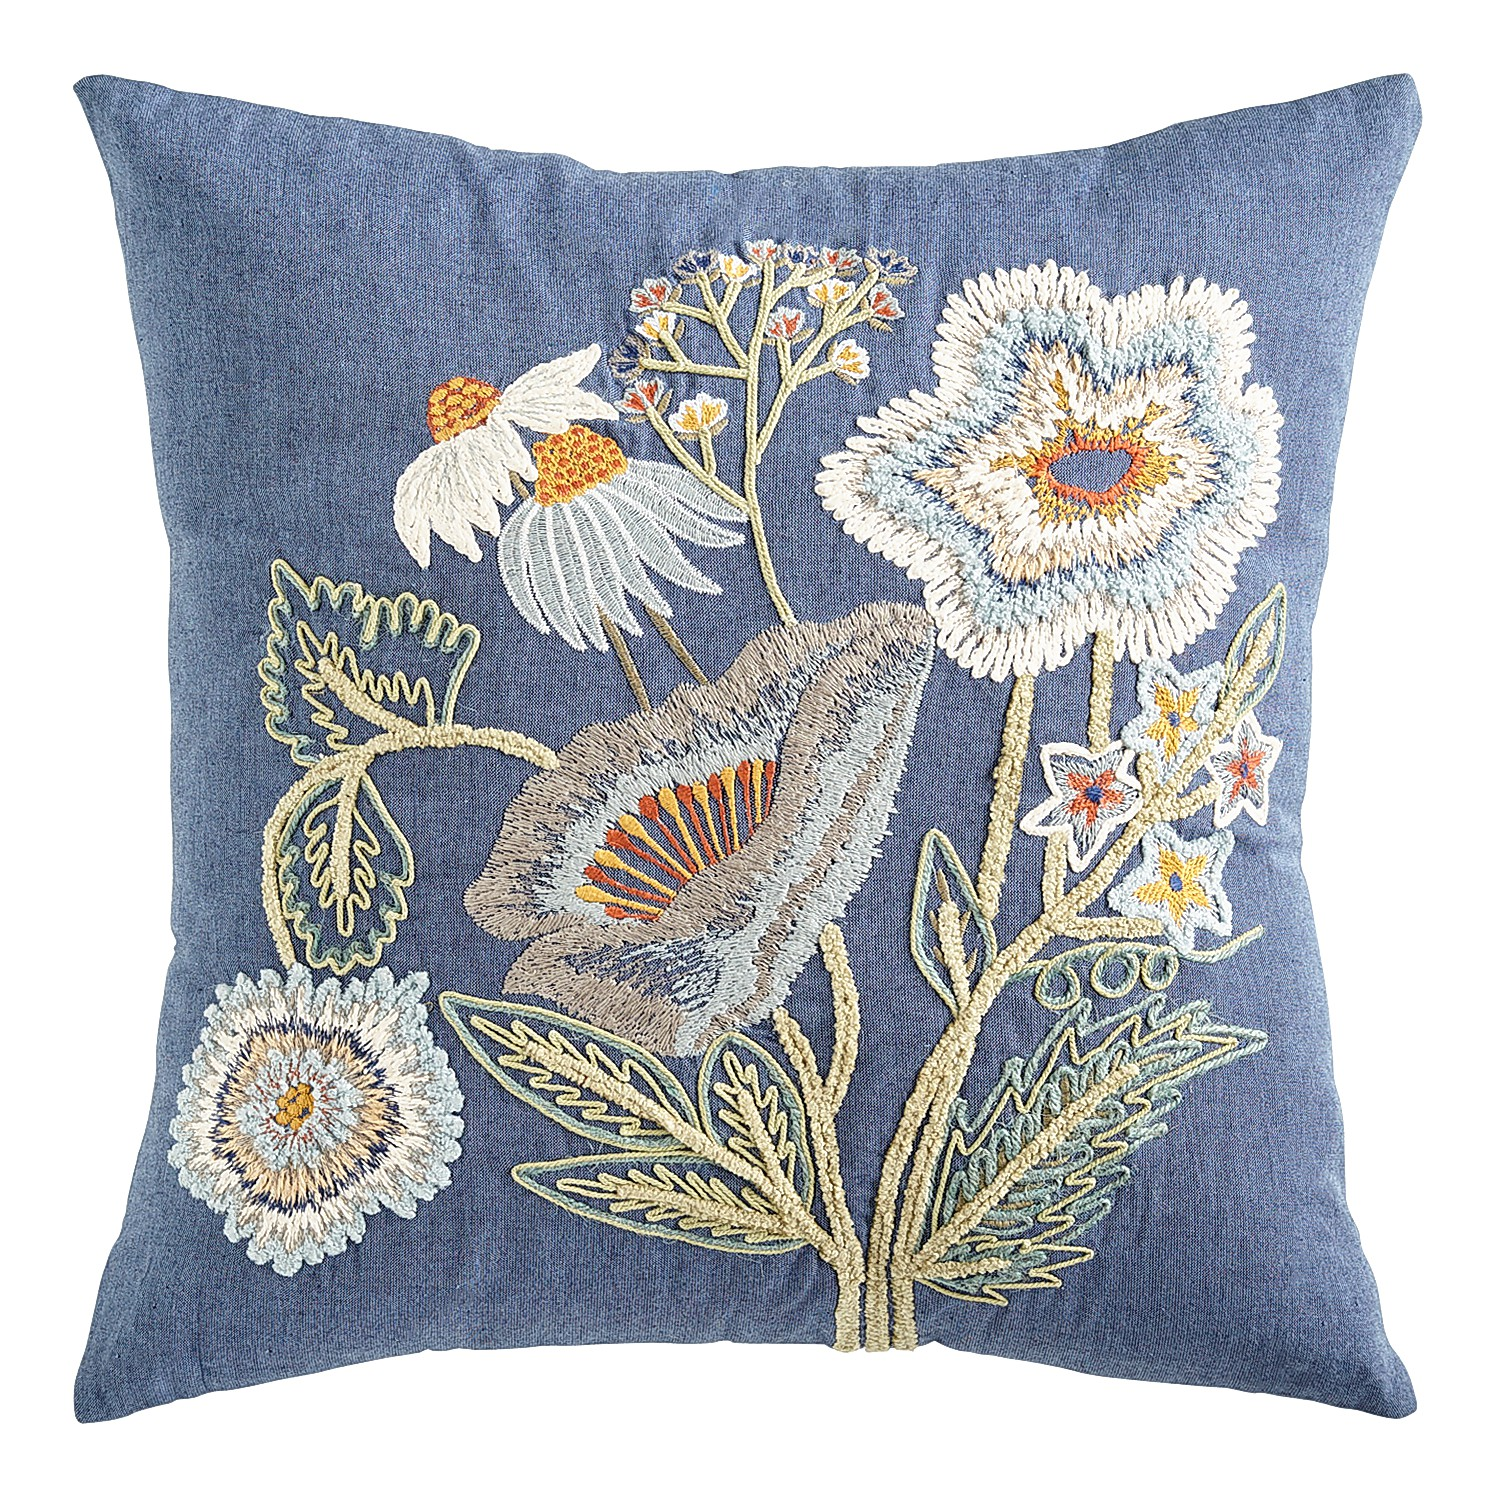 Embroidered Poppies Blue Pillow